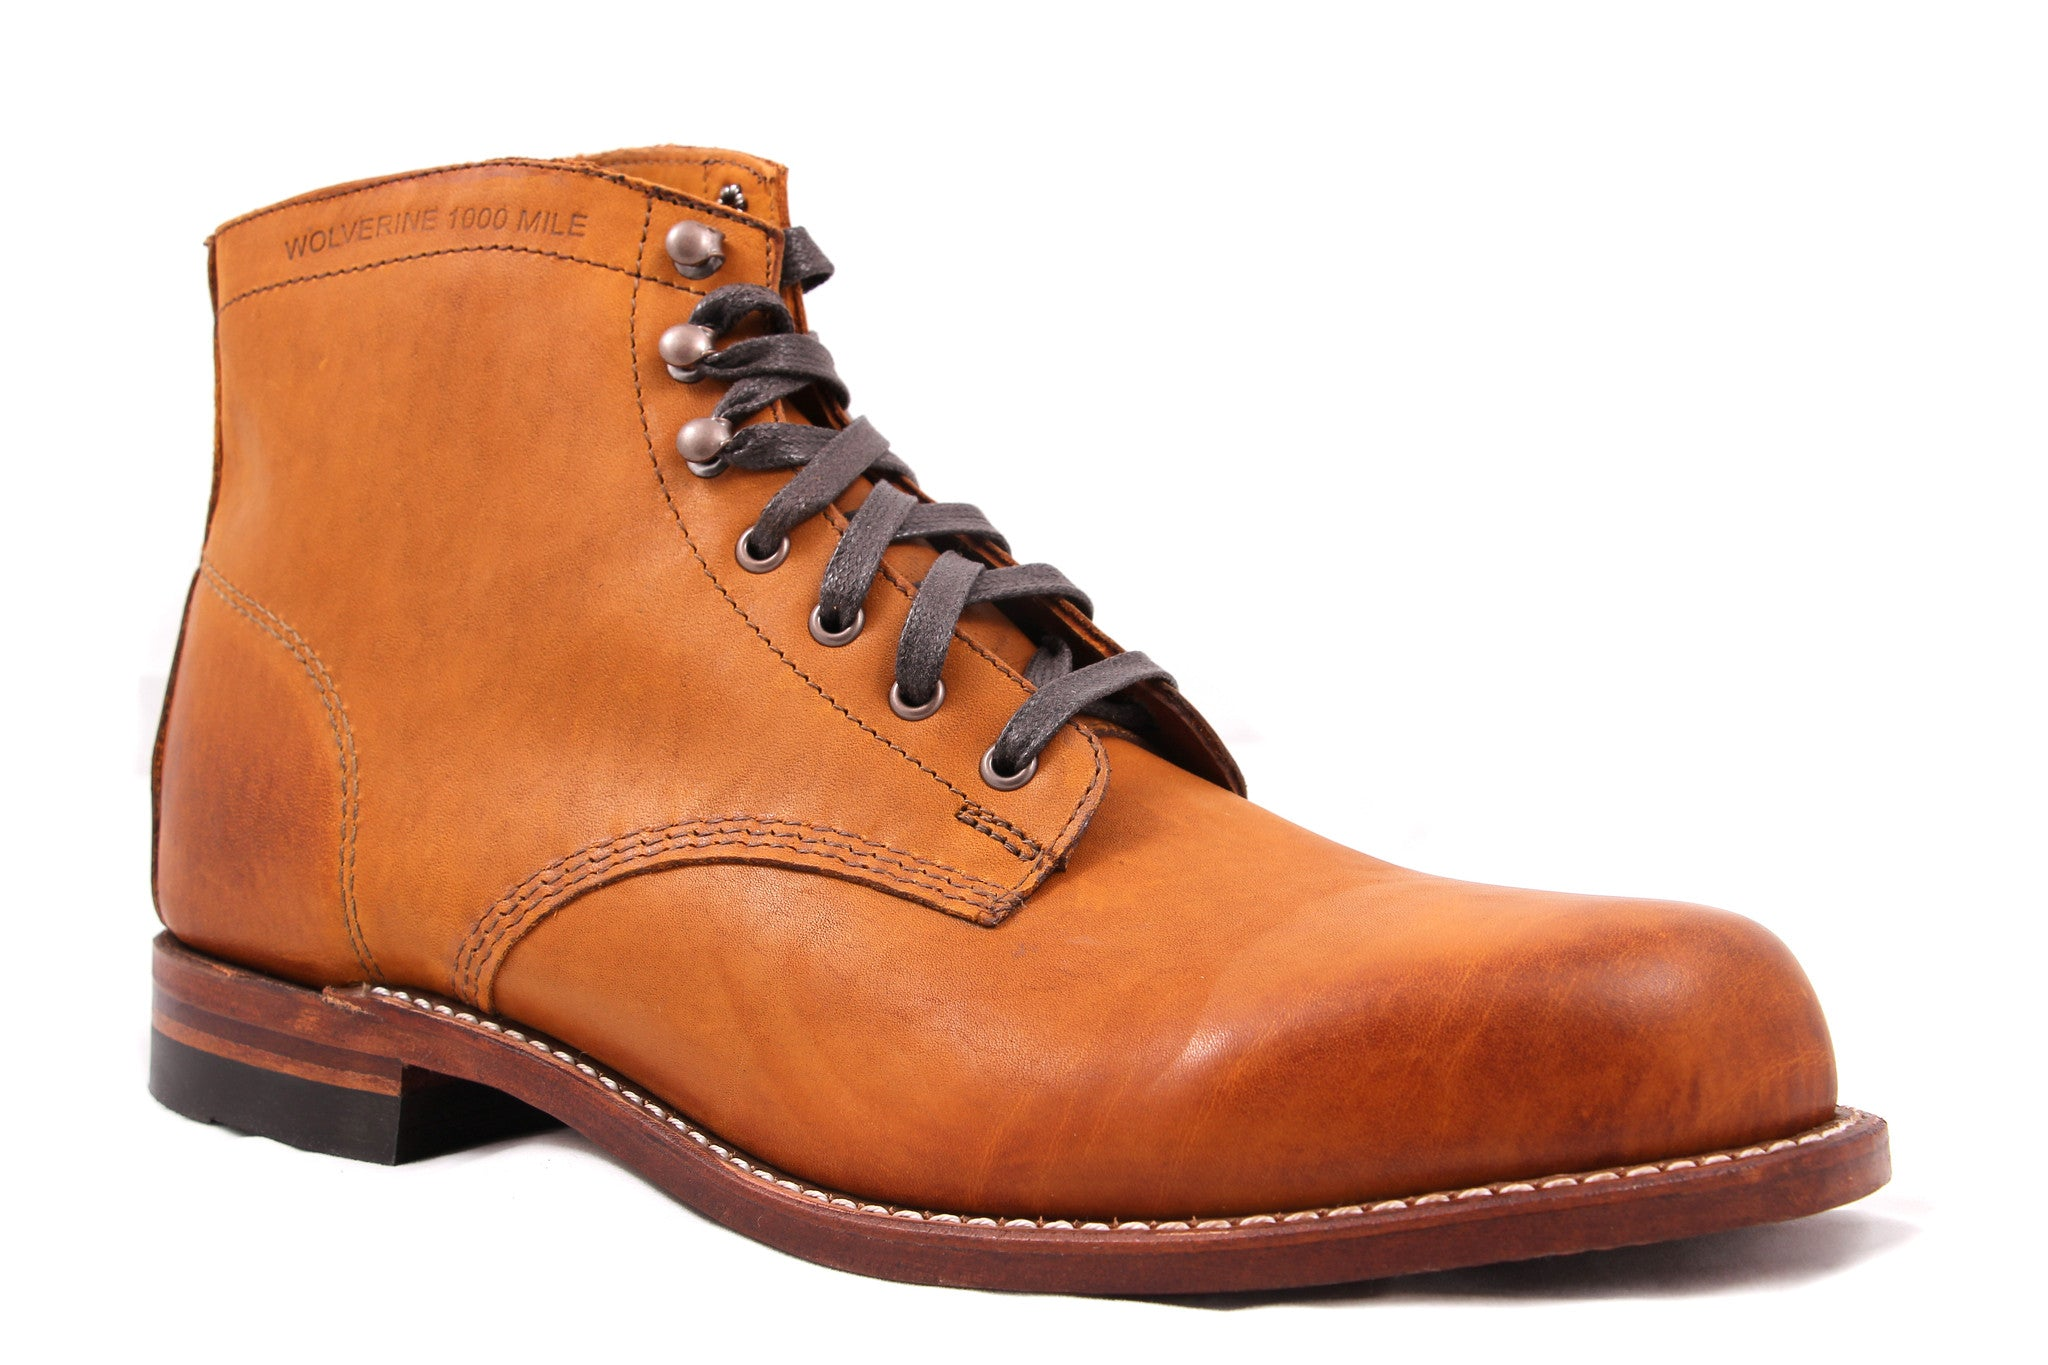 WOLVERINE 1000 MILE TAN W05848 - COSMOTOG